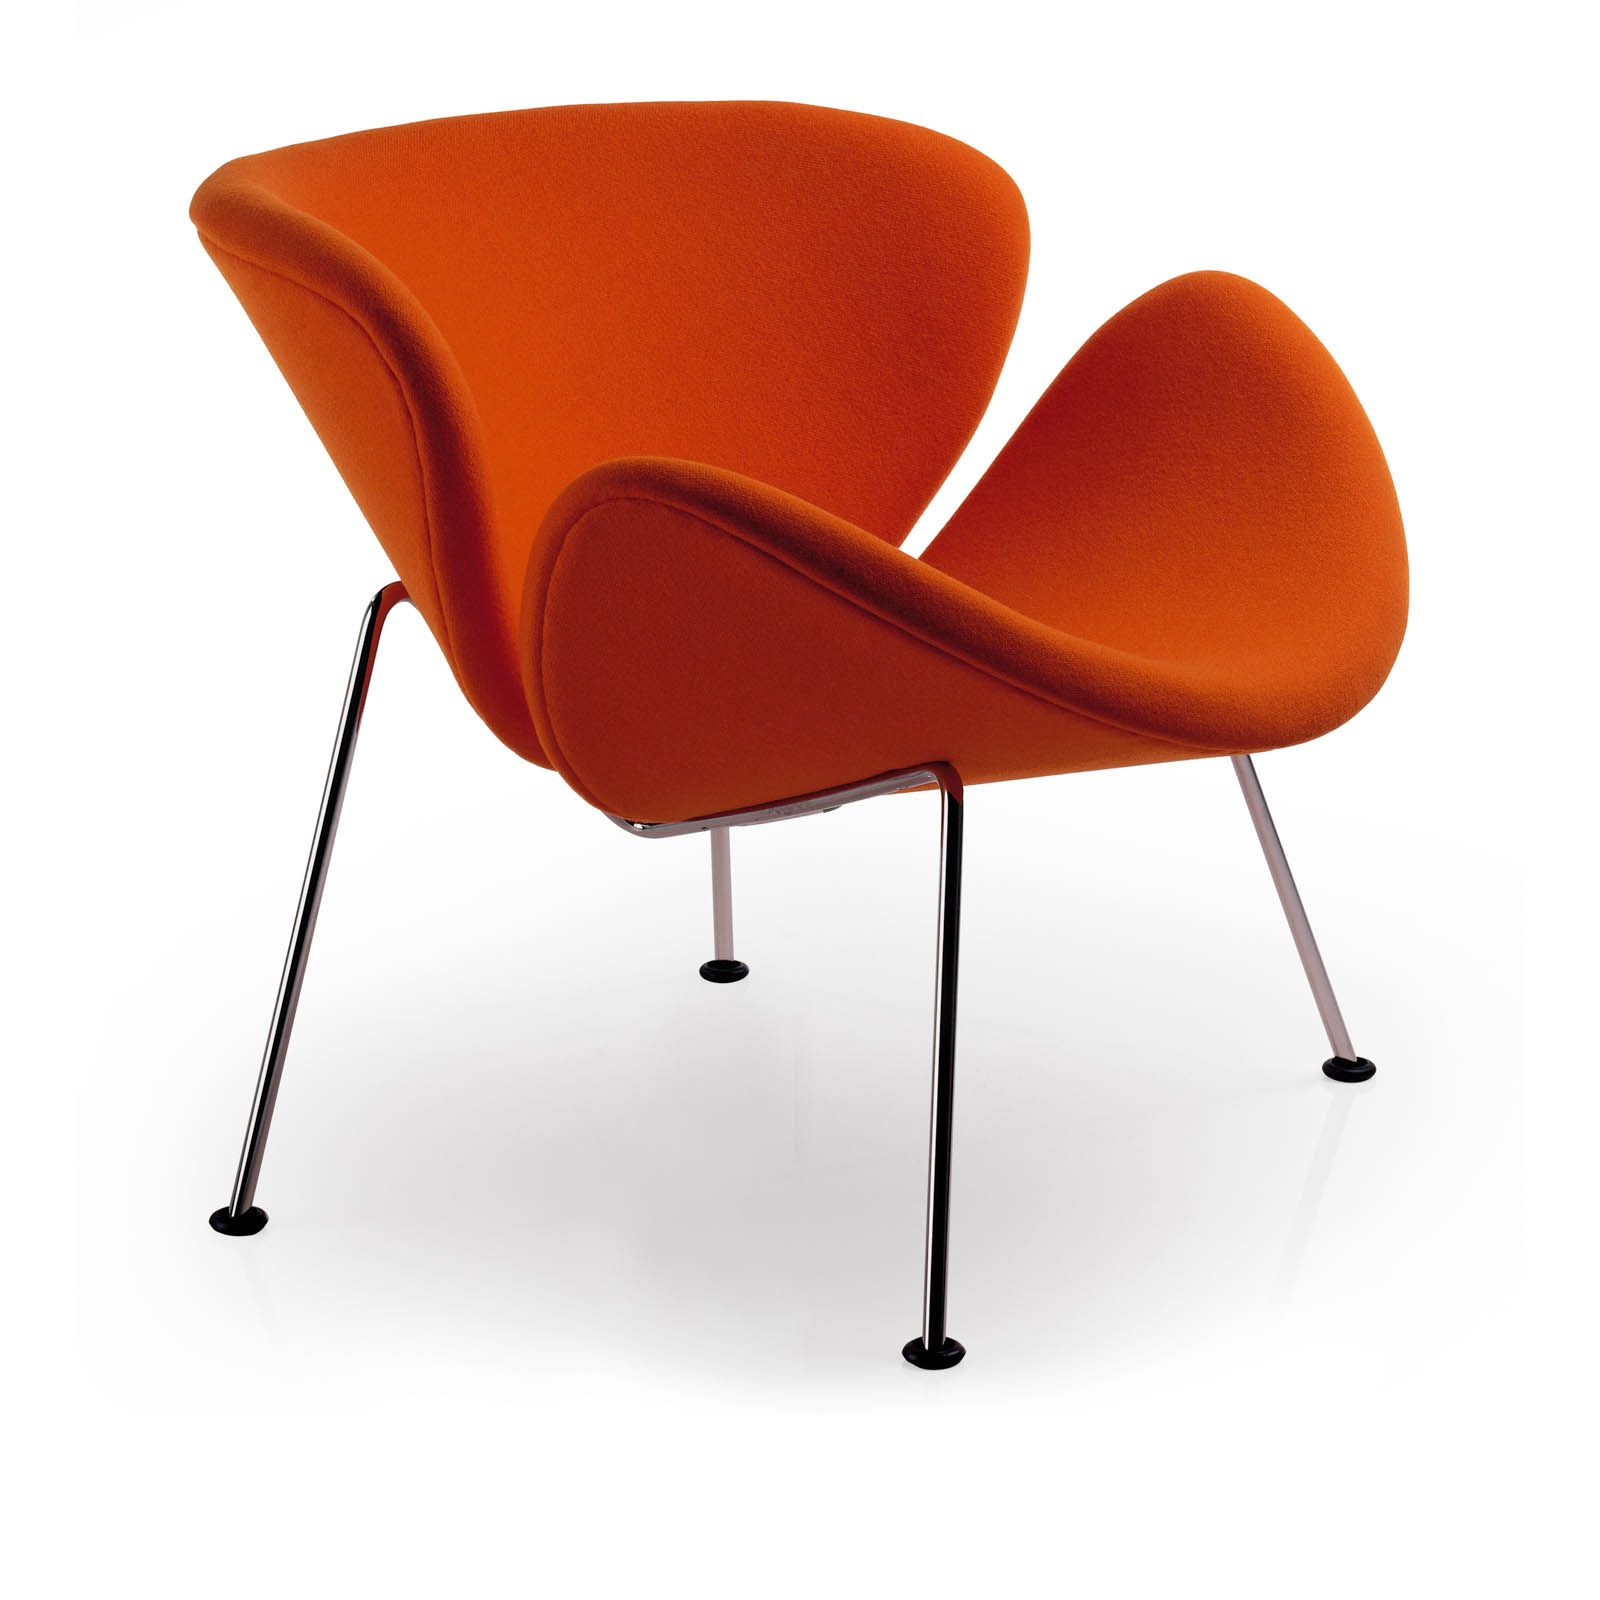 ORANGE SLICE LOUNGE CHAIR